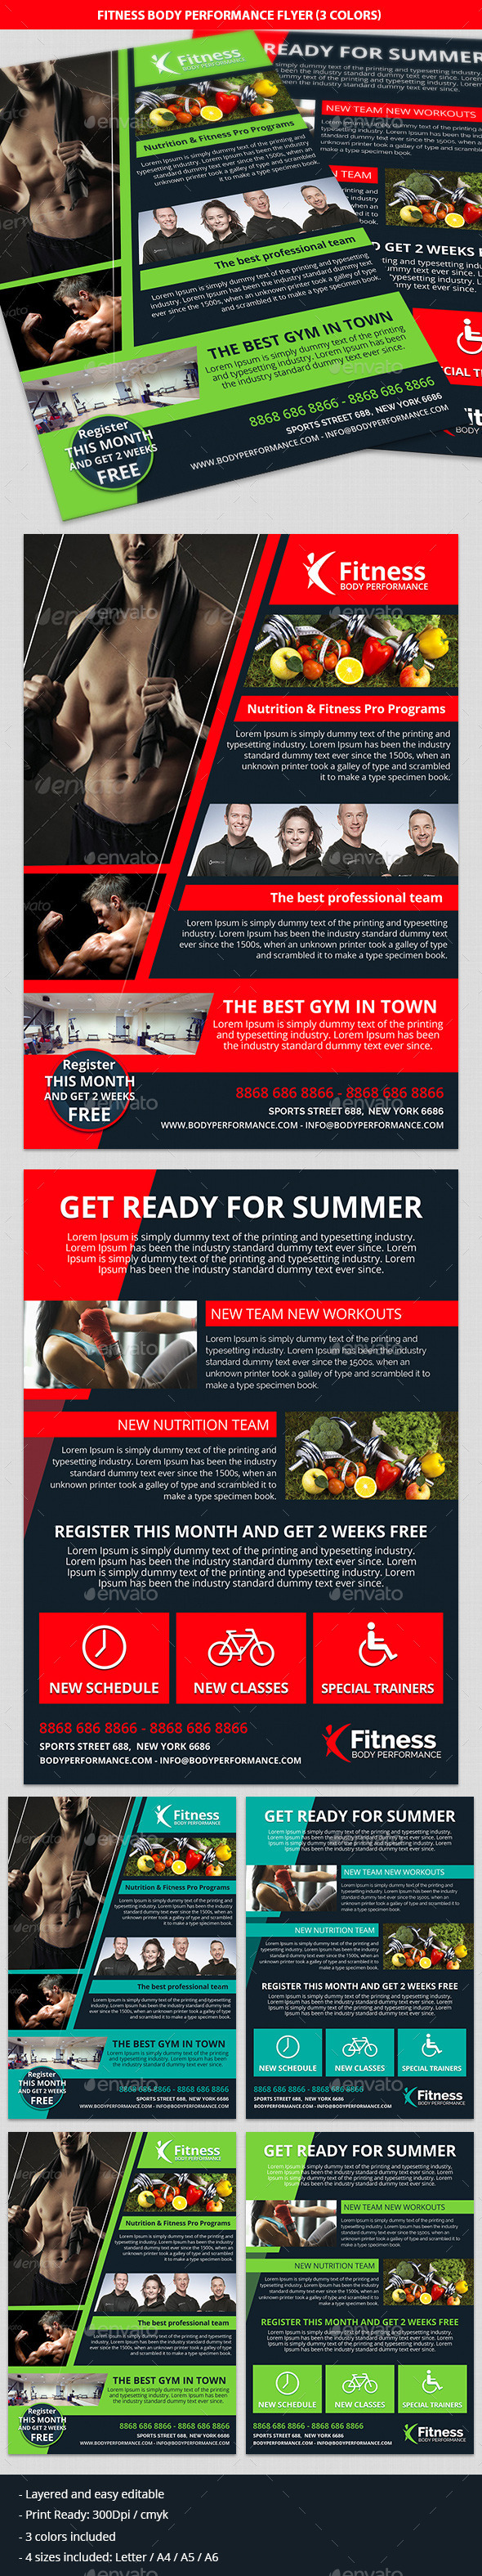 Fitness, Gym & Body Performance Business Flyer